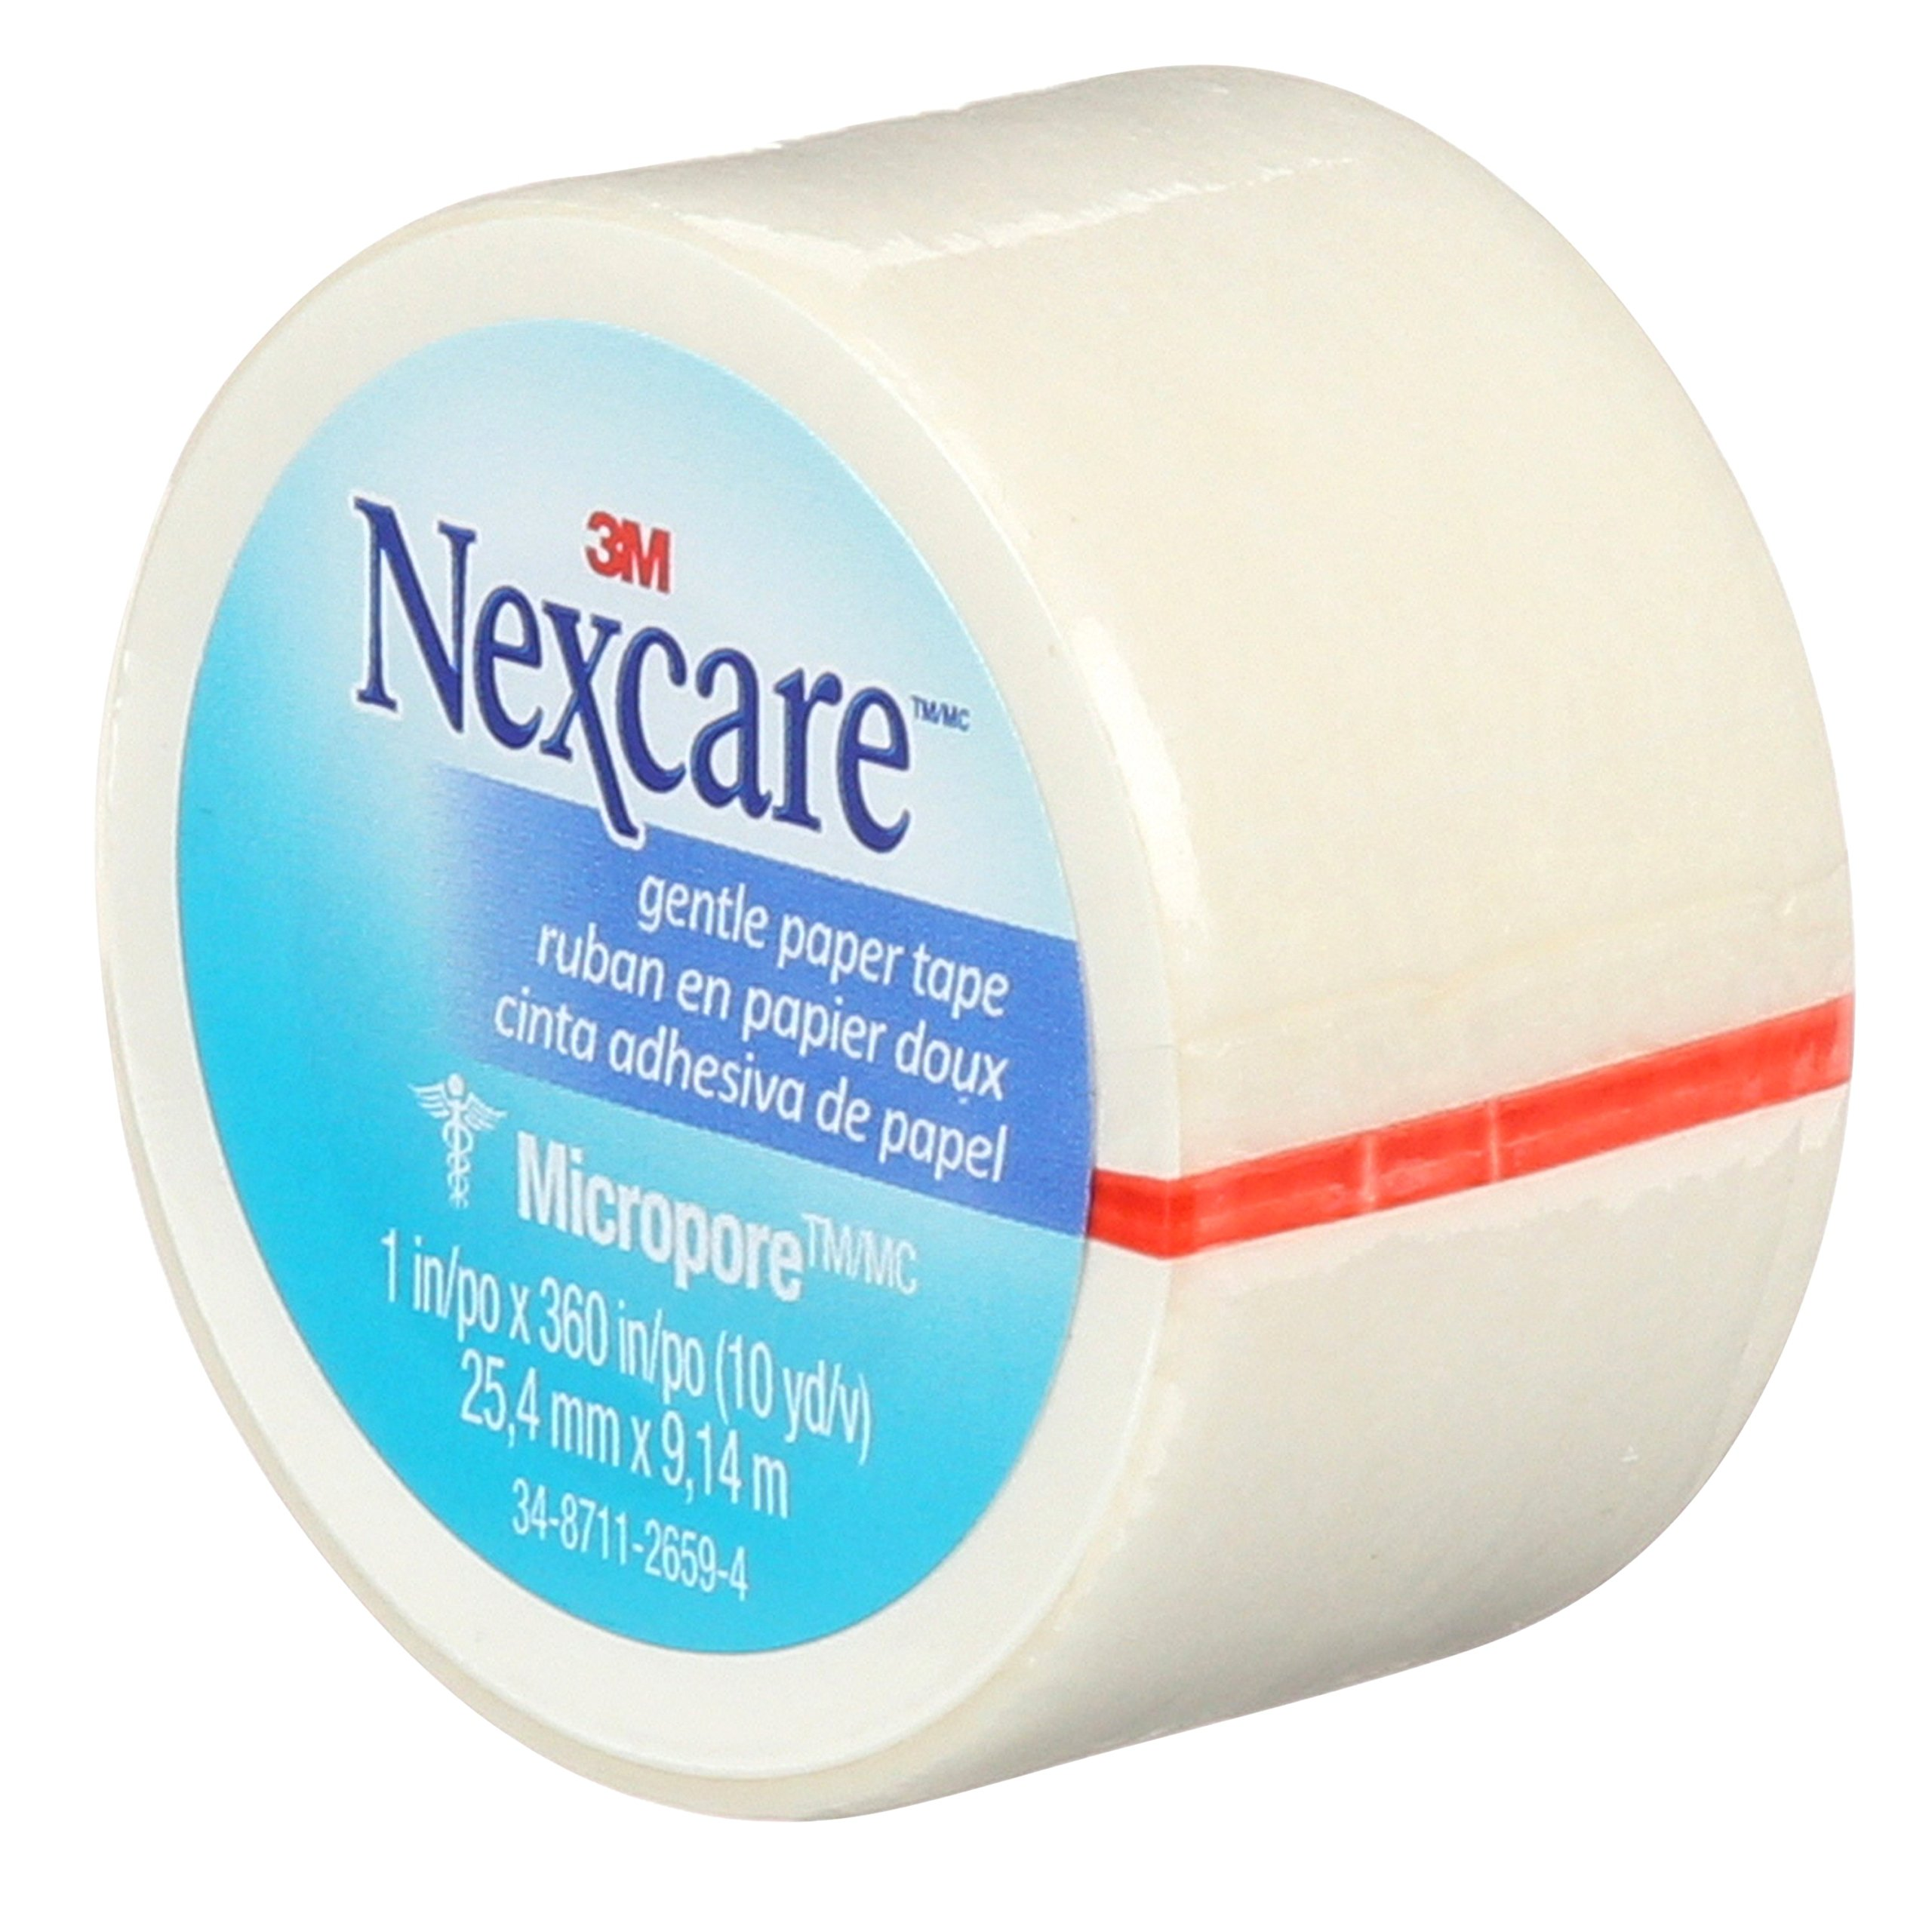 Nexcare Micropore Gentle Paper Tape, Dermatologist Tested, 1 Inch X 10 Yards, 9 Rolls by Nexcare